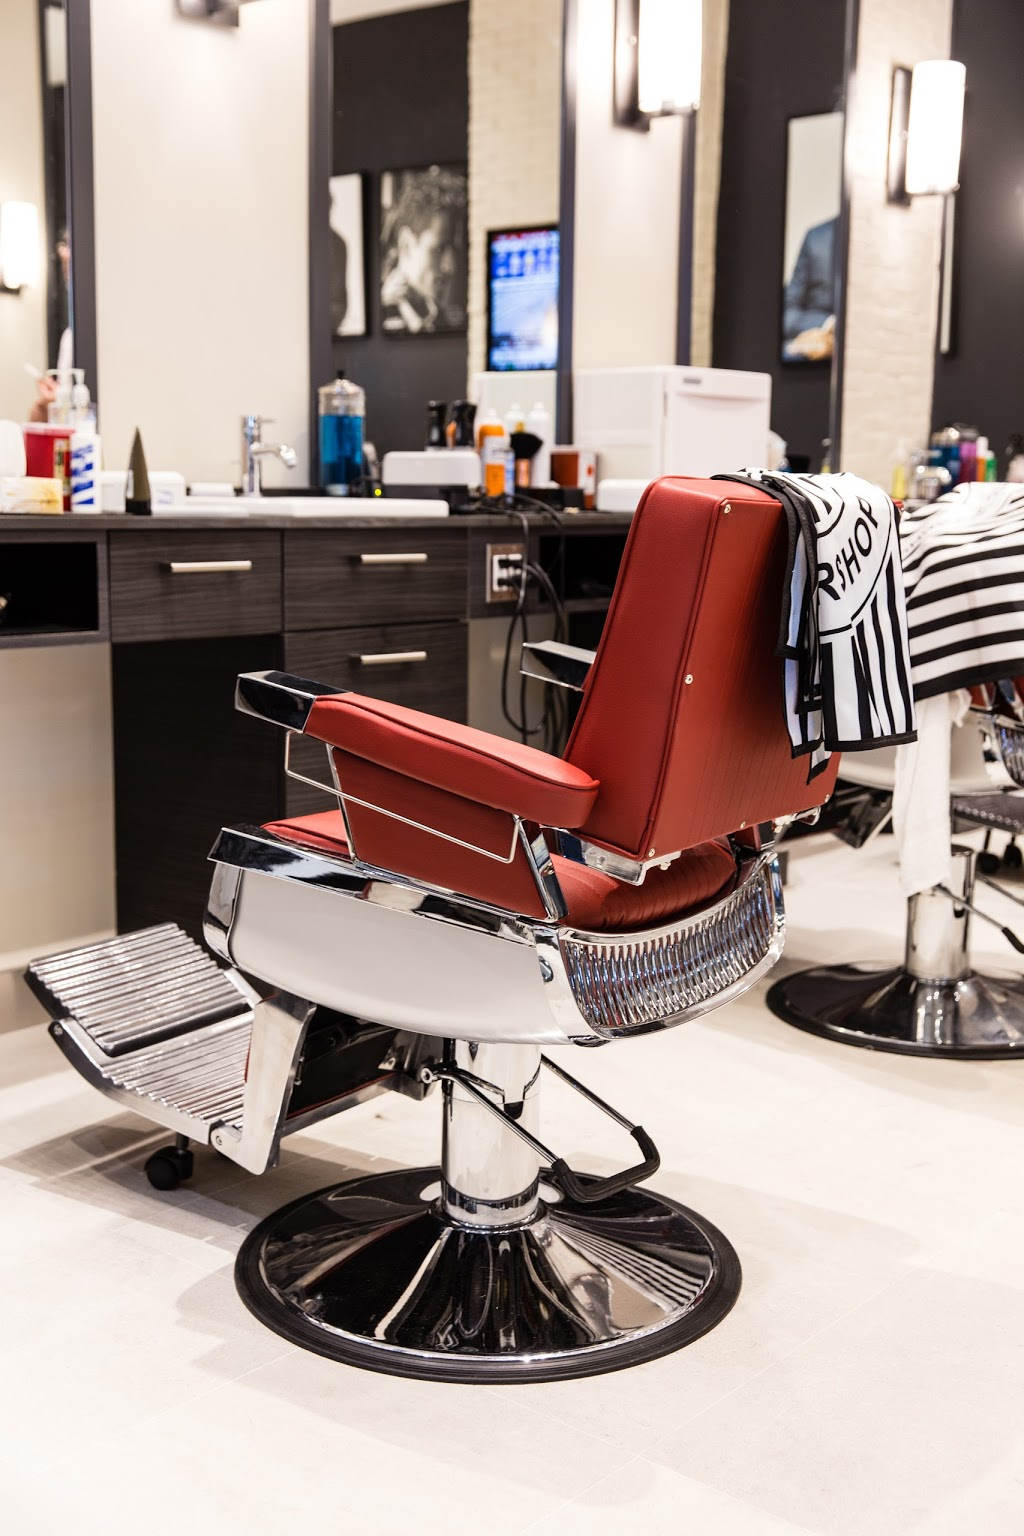 Ashby Grove   hair care   435 Stone Rd W Unit Z32, Guelph, ON N1G 2X6, Canada   5198375500 OR +1 519-837-5500